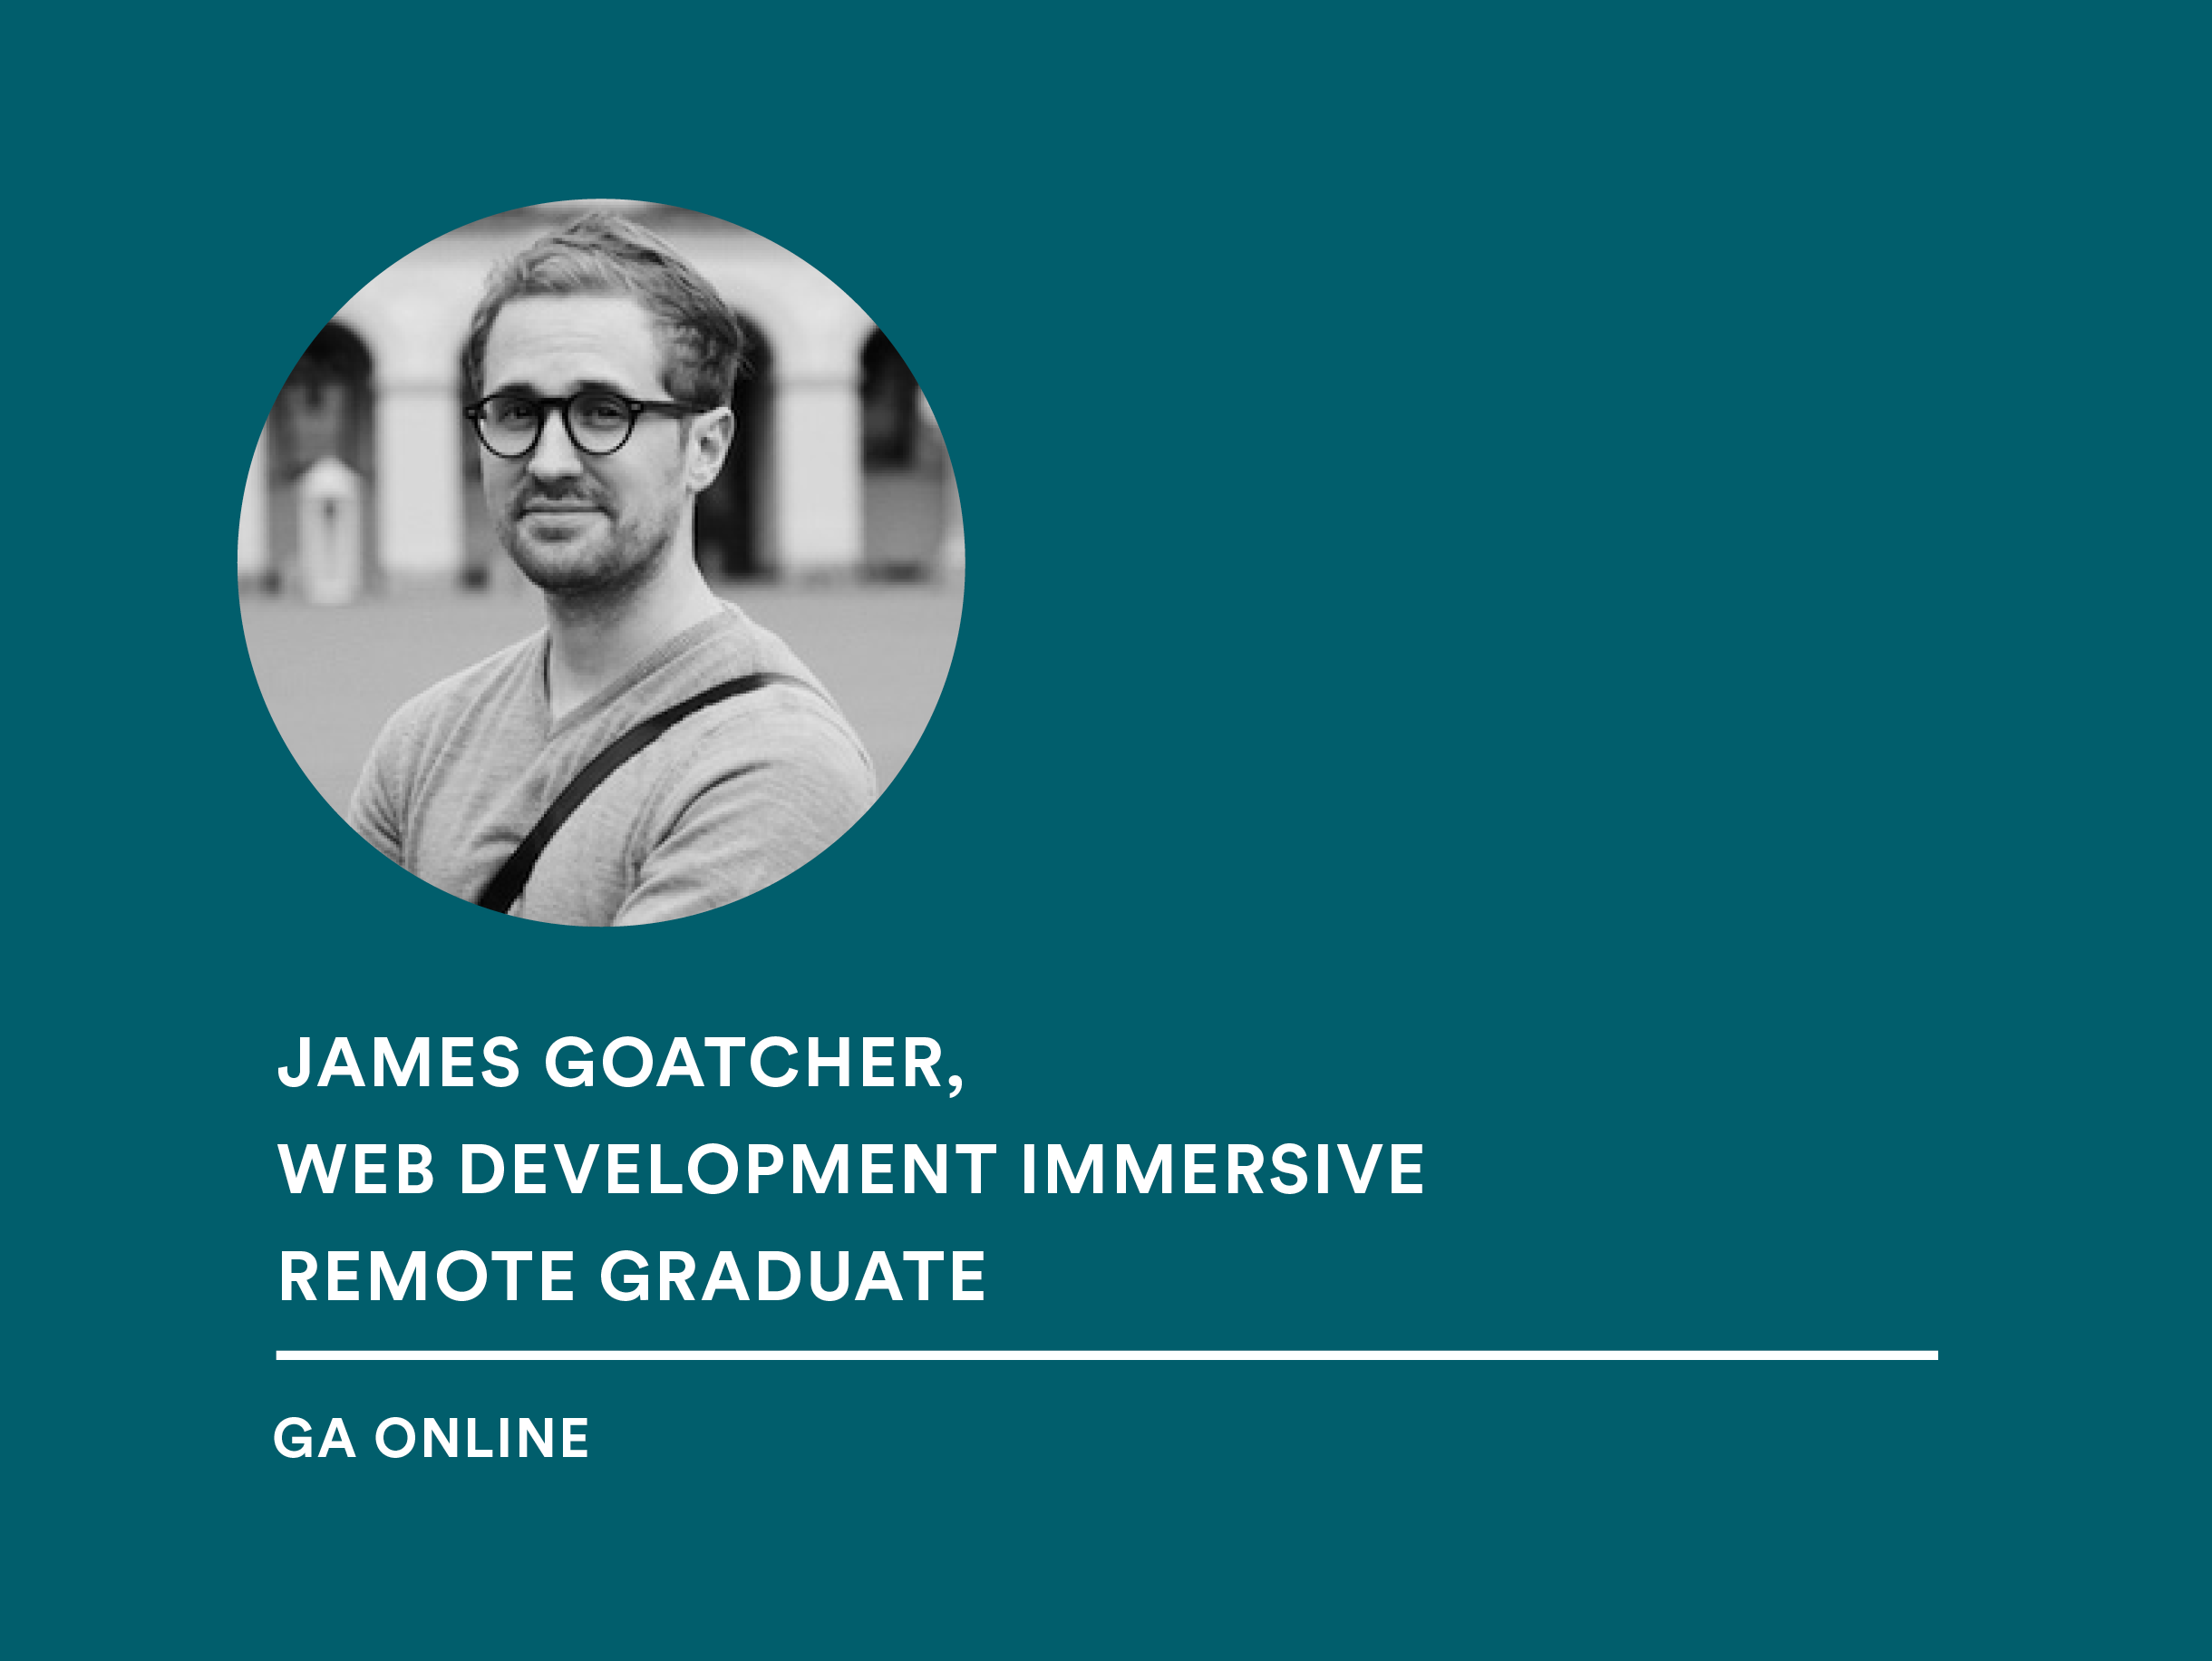 Student James Goatcher